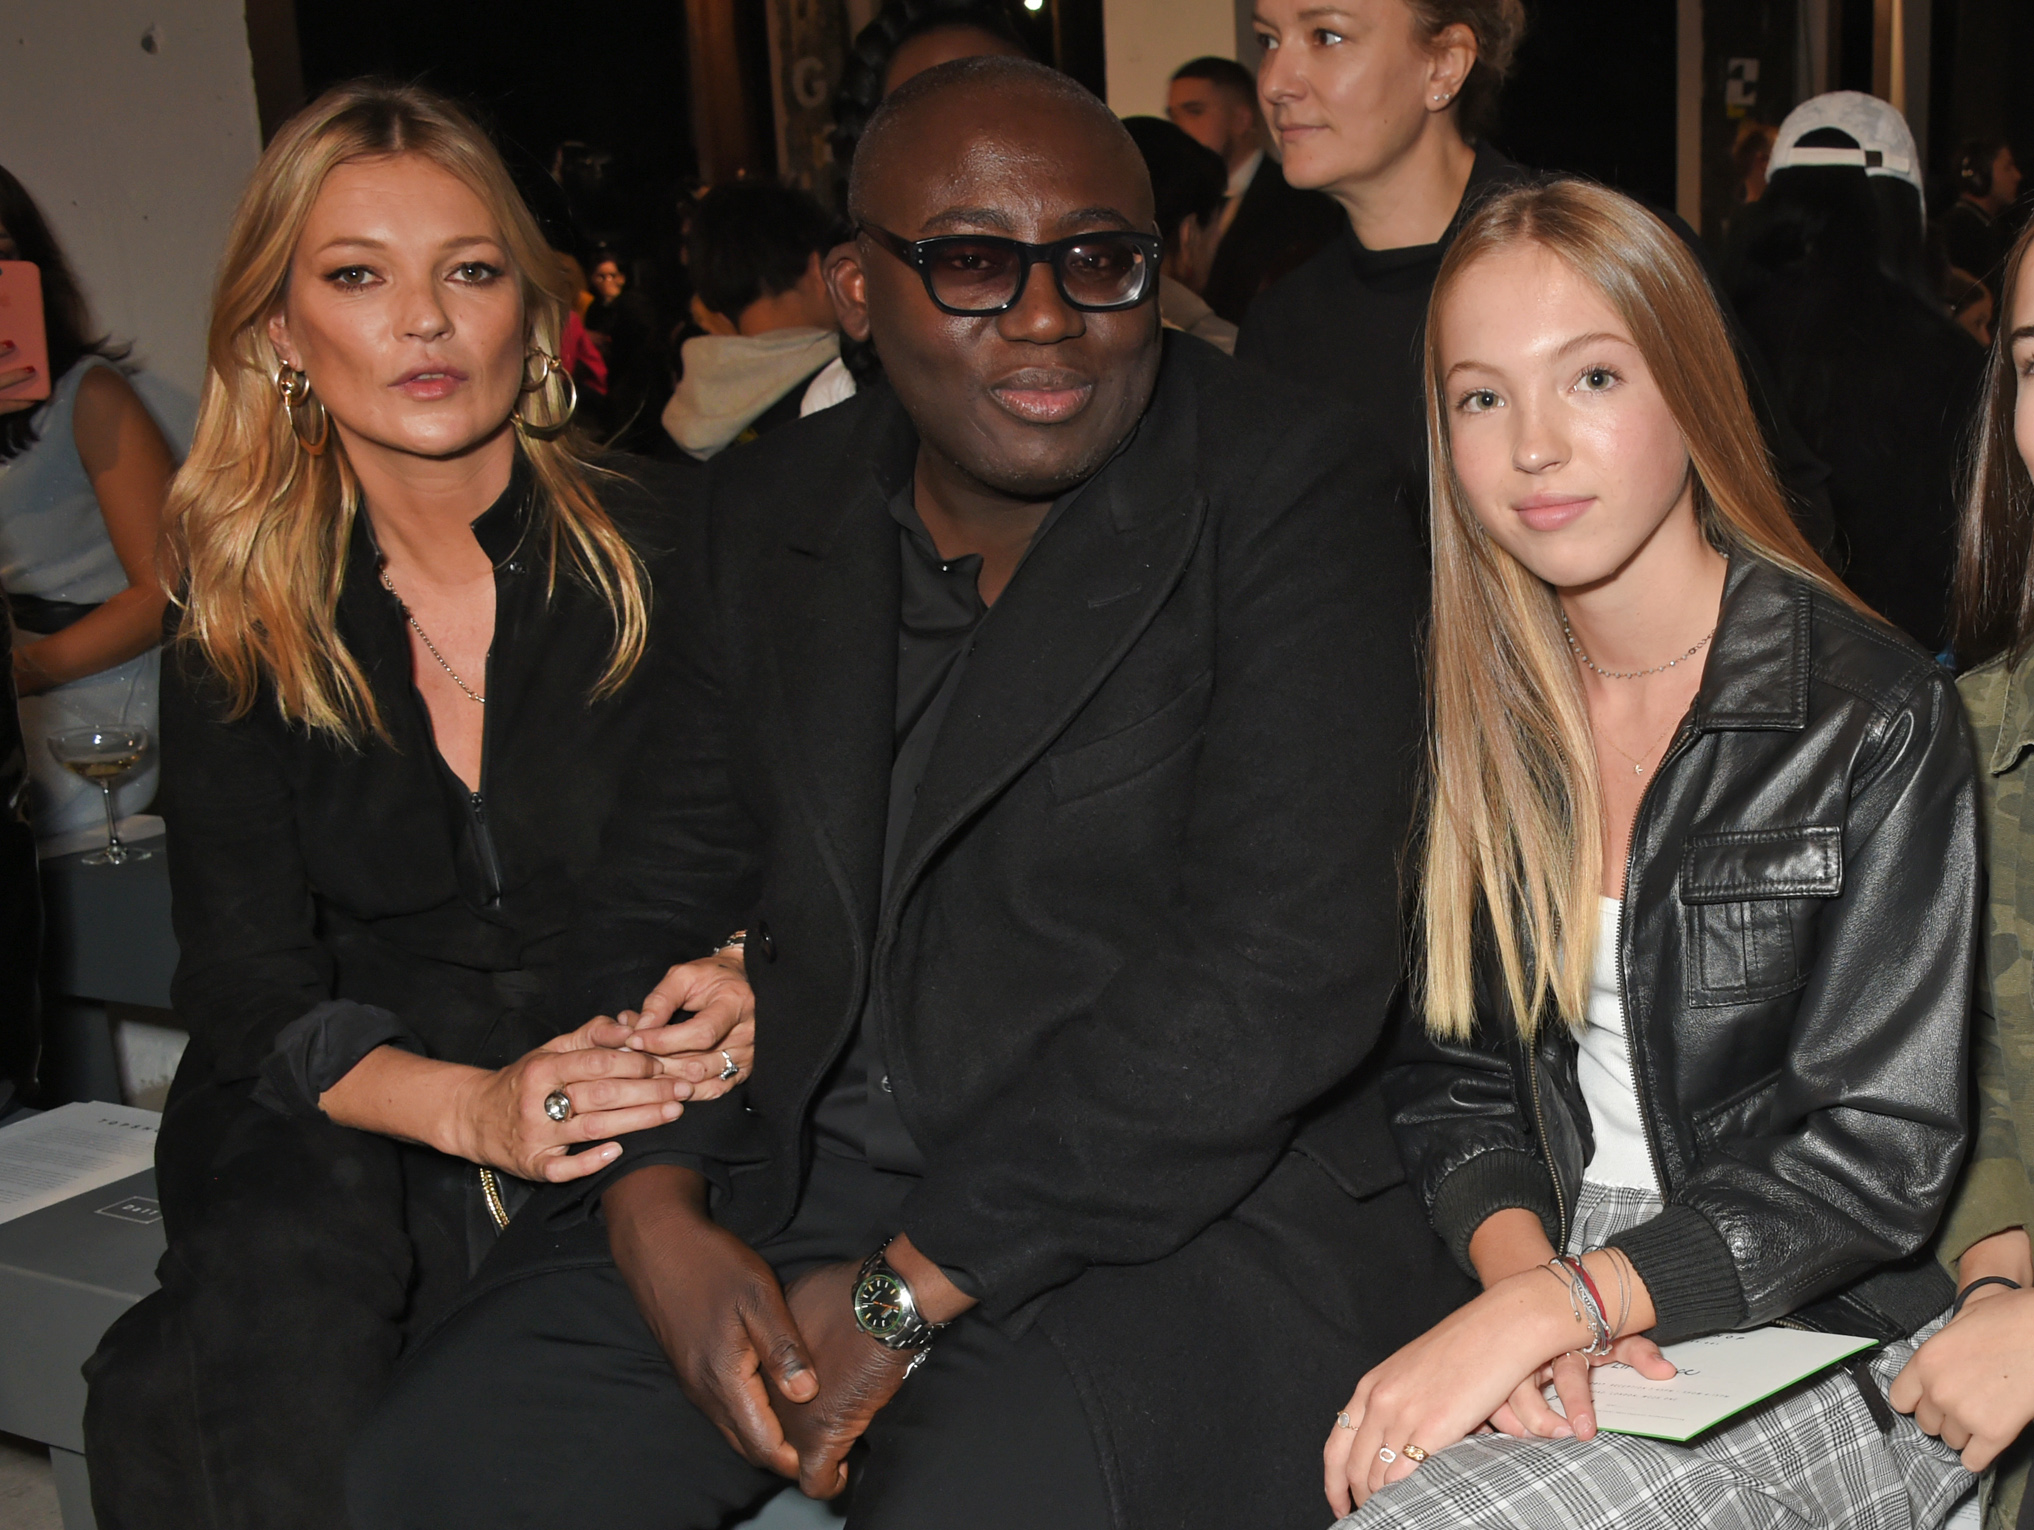 "<p>British retail giant Topshop's Spring/Summer '18 show was a family affair for supermodel Kate Moss who was joined in the front row by 16-year-old daughter Lila Grace. </p> <p>Moss's only child marked her first-ever fashion week appearance with a seat next to new <em>British Vogue</em> editor-in-chief Edward Enniful and complemented her famous mum's all-black ensemble in  a  leather jacket and checked pants.</p> <p>Models-of-the-moments Hailey Baldwin, Jourdan Dunn and Joan Smalls strutted their stuff in bold,  prints, leather skirts, flowing gowns, furry jackets and over-sized jackets.<br style=""box-sizing: border-box; color: #333333; font-family: HurmeGeometricSans, Helvetica, Arial, sans-serif; font-size: 16px; word-spacing: -0.96px; background-color: rgba(255, 255, 255, 0.8);"" />  <br style=""box-sizing: border-box; color: #333333; font-family: HurmeGeometricSans, Helvetica, Arial, sans-serif; font-size: 16px; word-spacing: -0.96px; background-color: rgba(255, 255, 255, 0.8);"" /> Moss is a regular in the front-row of Topshop, having worked with the British high-street brand for over 10 years with her highly-coveted Kate Moss X Topshop collaborations. </p> <p>Sartorial sweetheart Olivia Palermo, Topshop chairman Sir Philip Green and model Arizona Muse were some of the other A-list faces that joined the British supermodel and her offspring in the front row.</p> <p>Click through to see the highlights of Topshop's star-studded S/S'18 show.</p>"